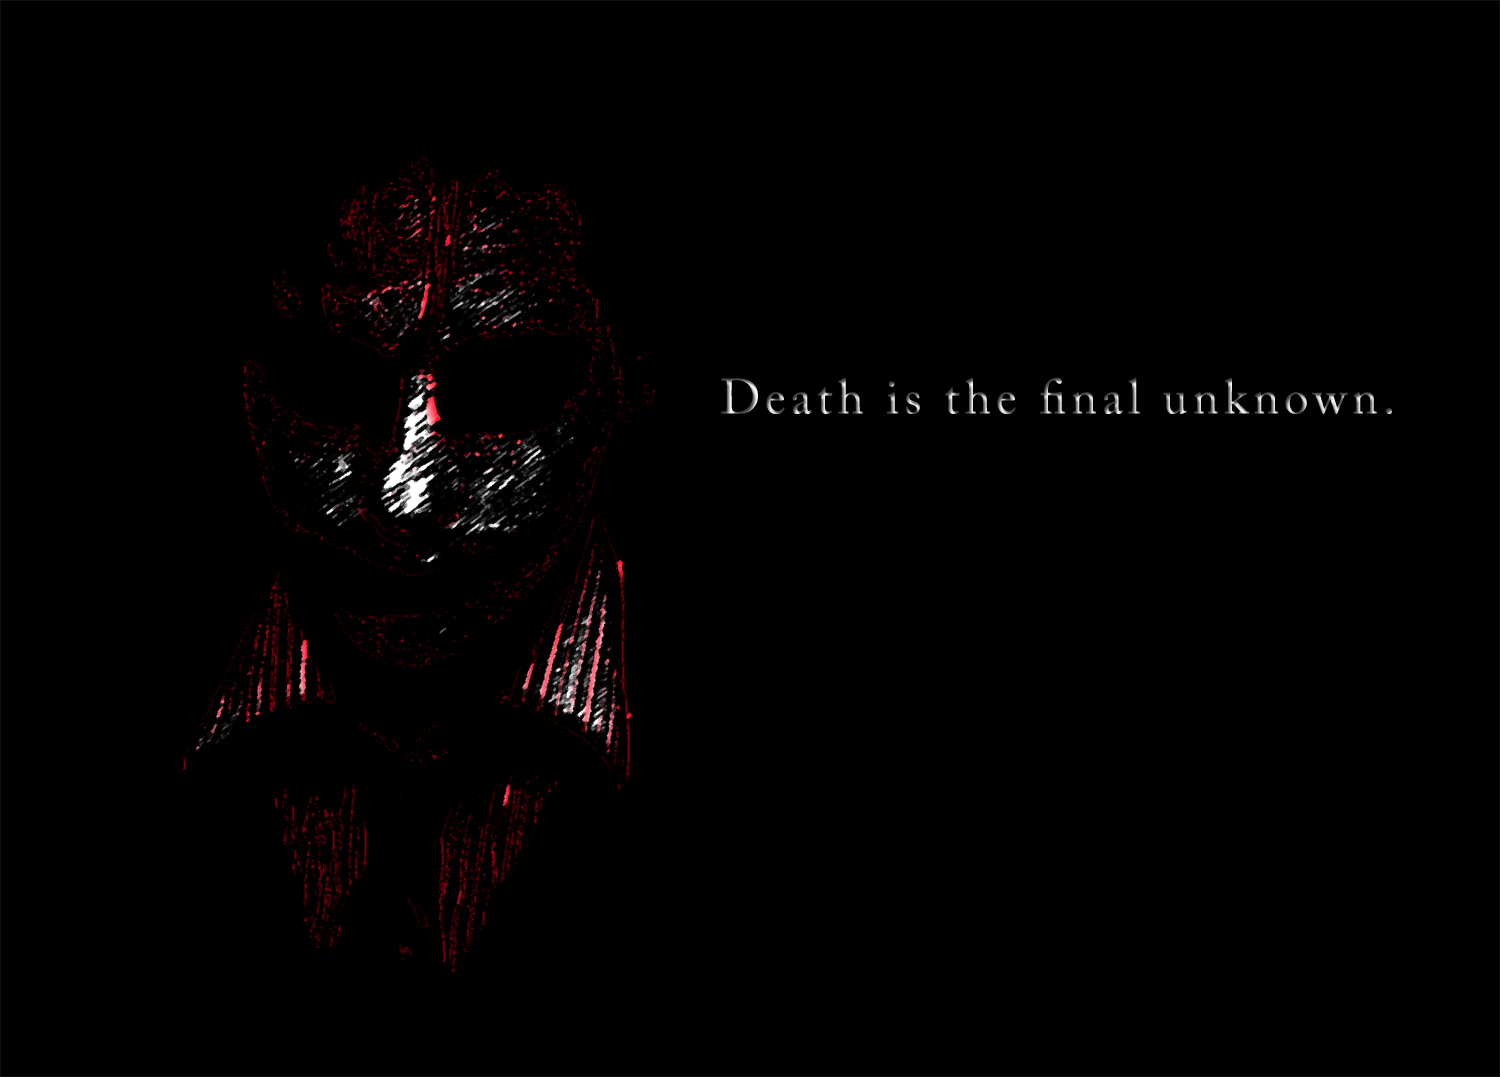 Death is the final unknown